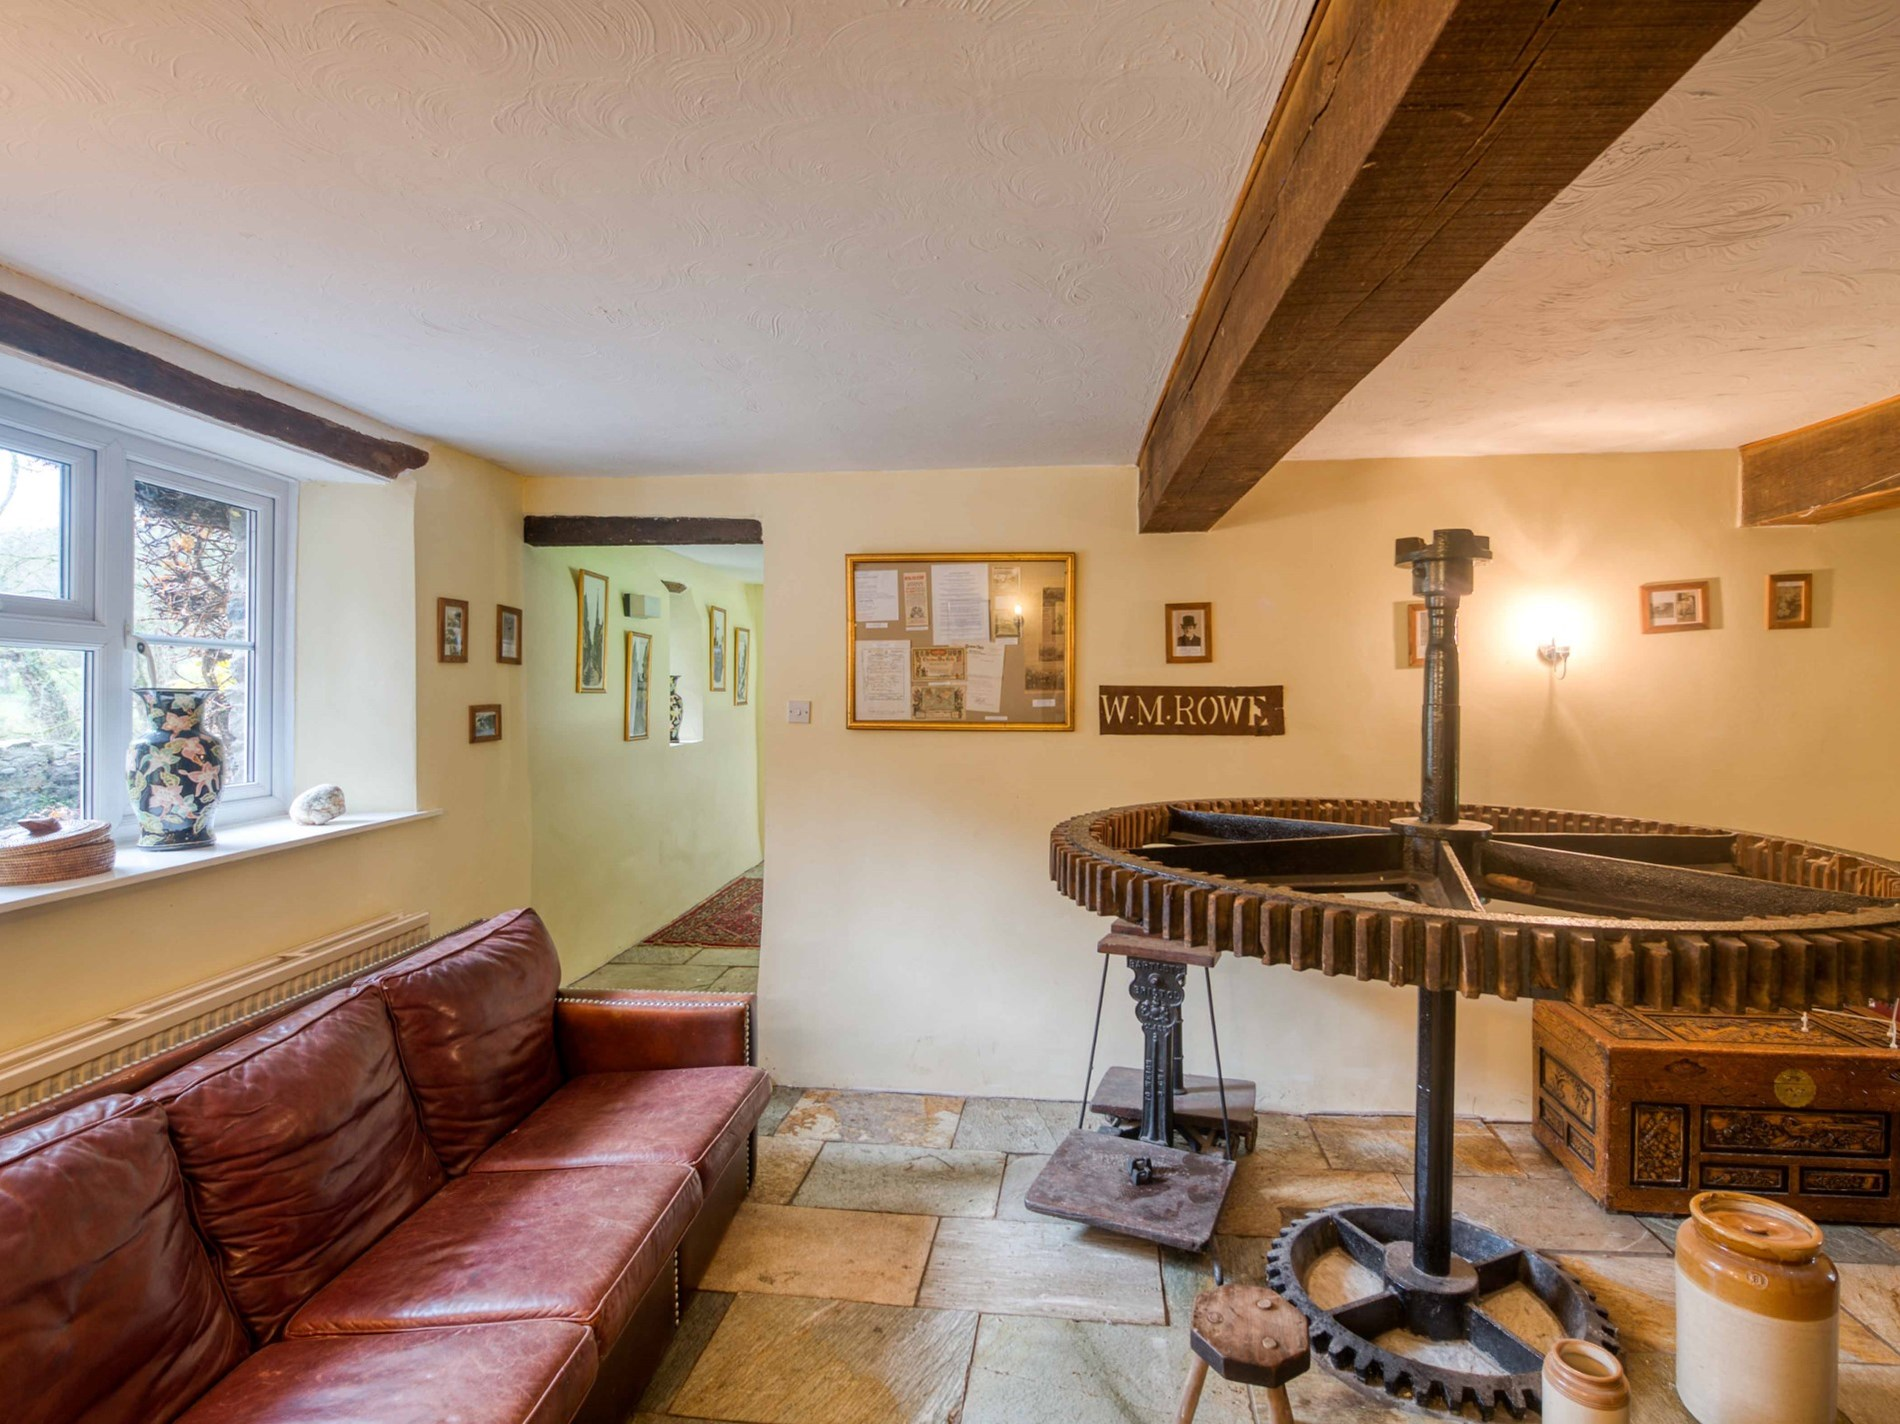 6 Bedroom Cottage in Crediton, Devon